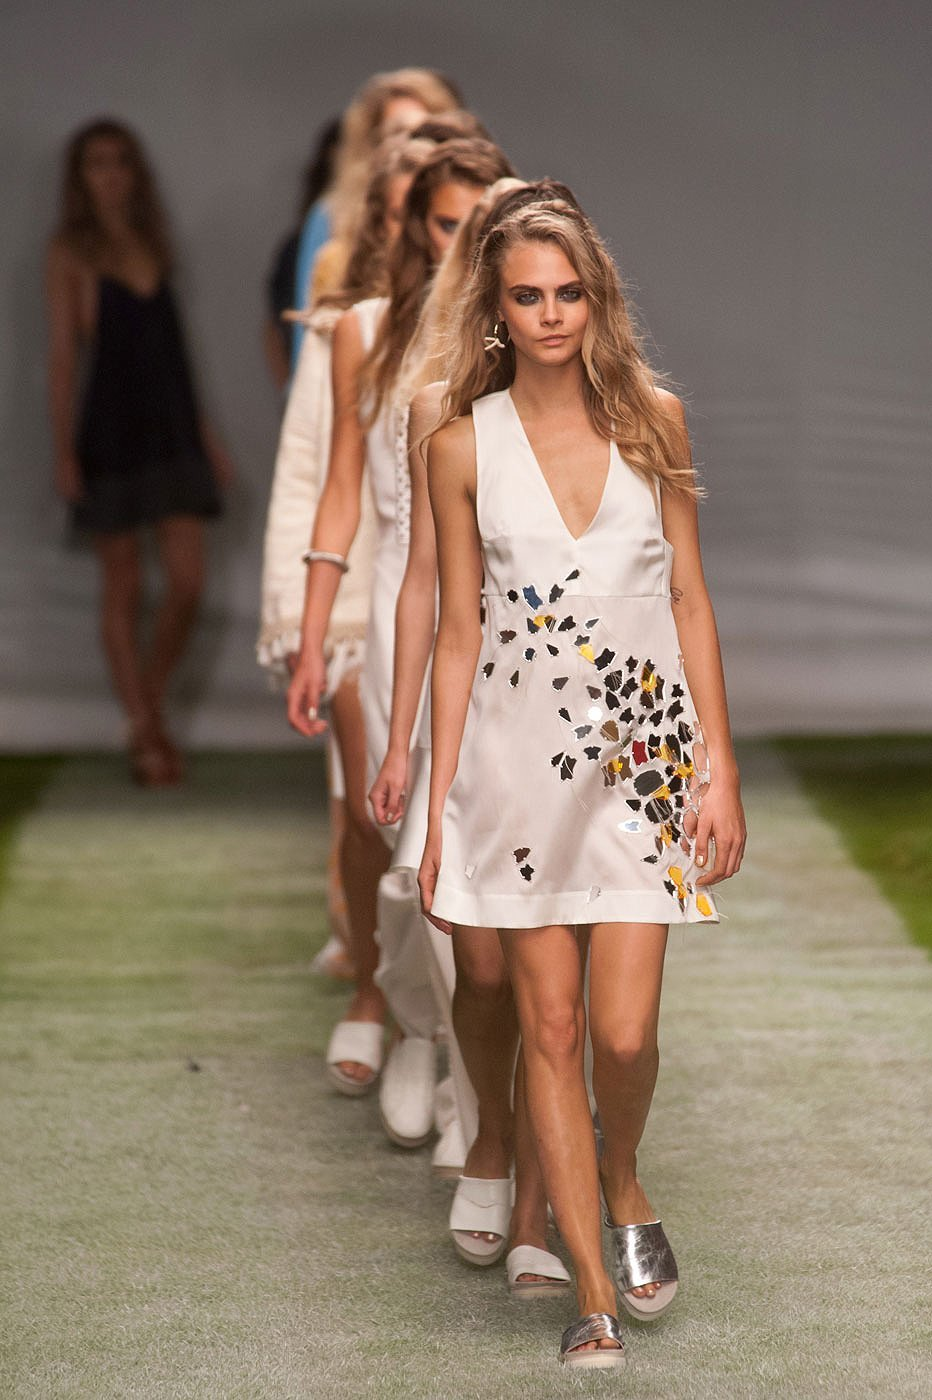 Gallery Of Top Spring Fashion Trends For Women [Slideshow]